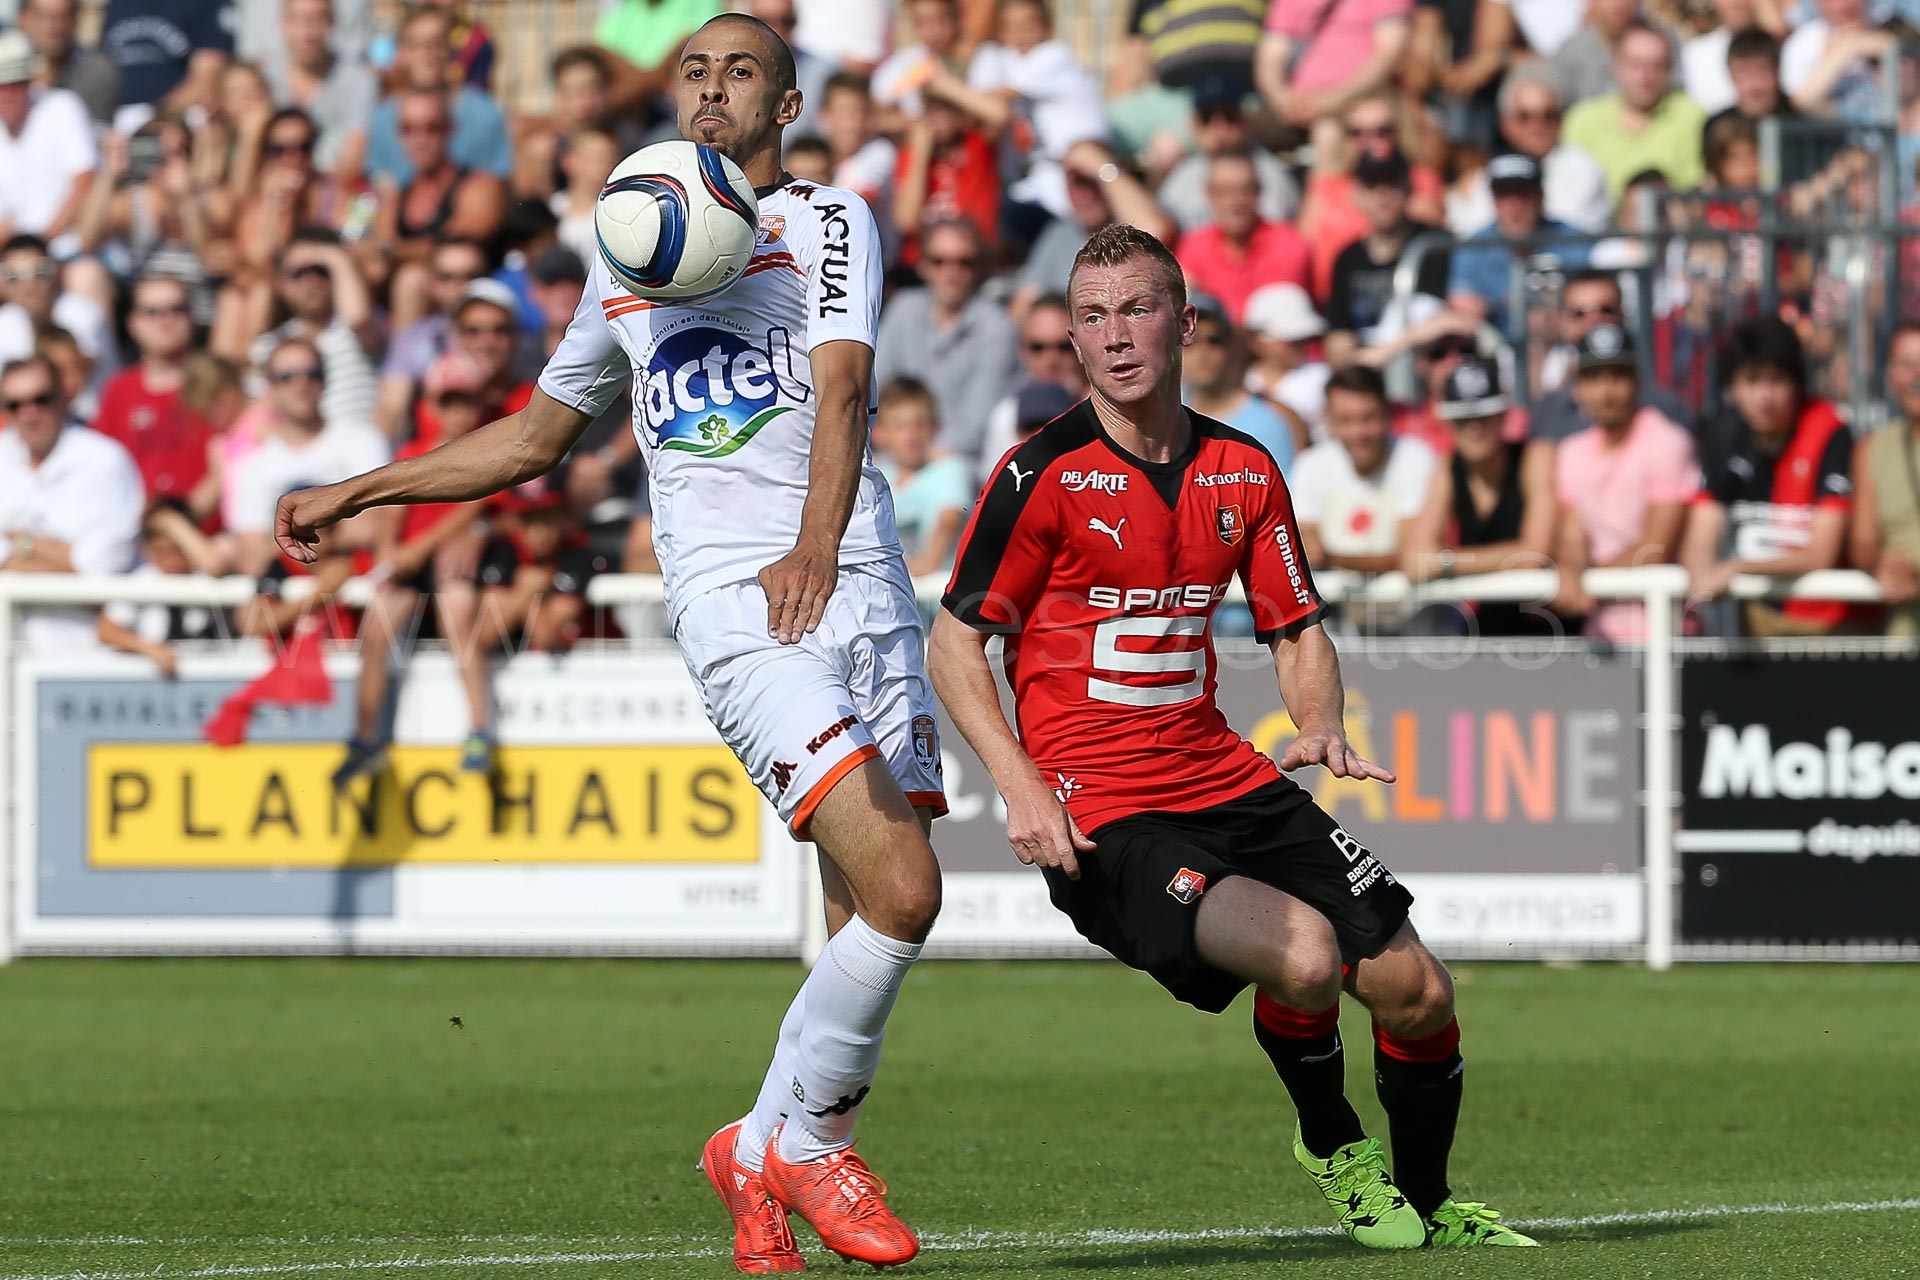 NG-Ligue 2-1516-Amical 1-Rennes-Laval__23